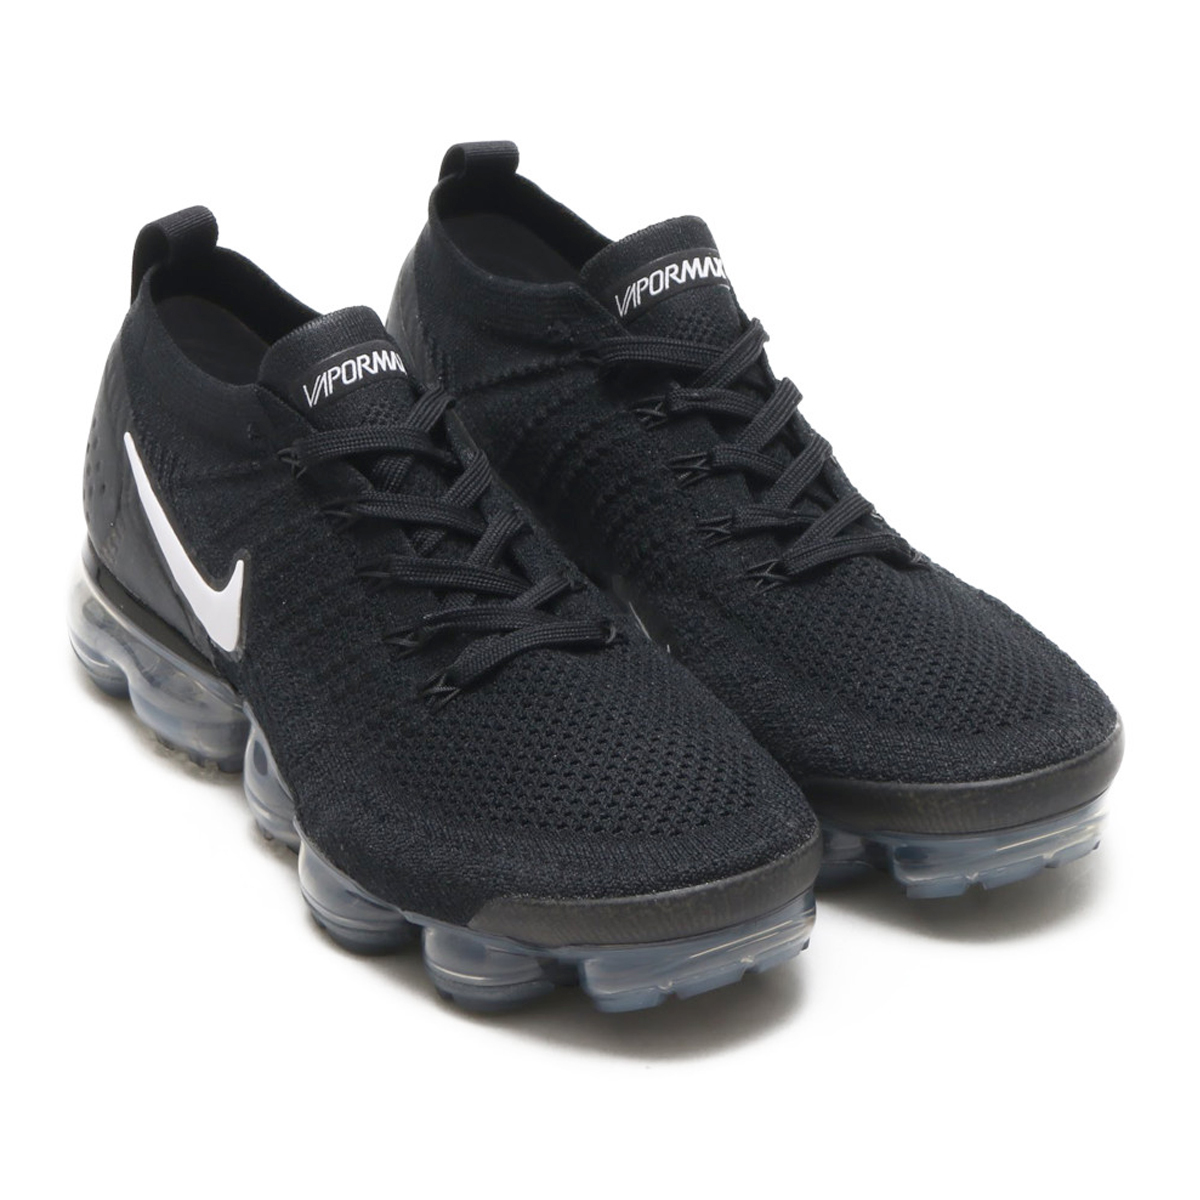 d78057fd0e68 NIKE AIR VAPORMAX FLYKNIT 2 (Nike air vapor max fried food knit 2) BLACK  WHITE-DARK GREY-METALLIC SILVER 18SP-I